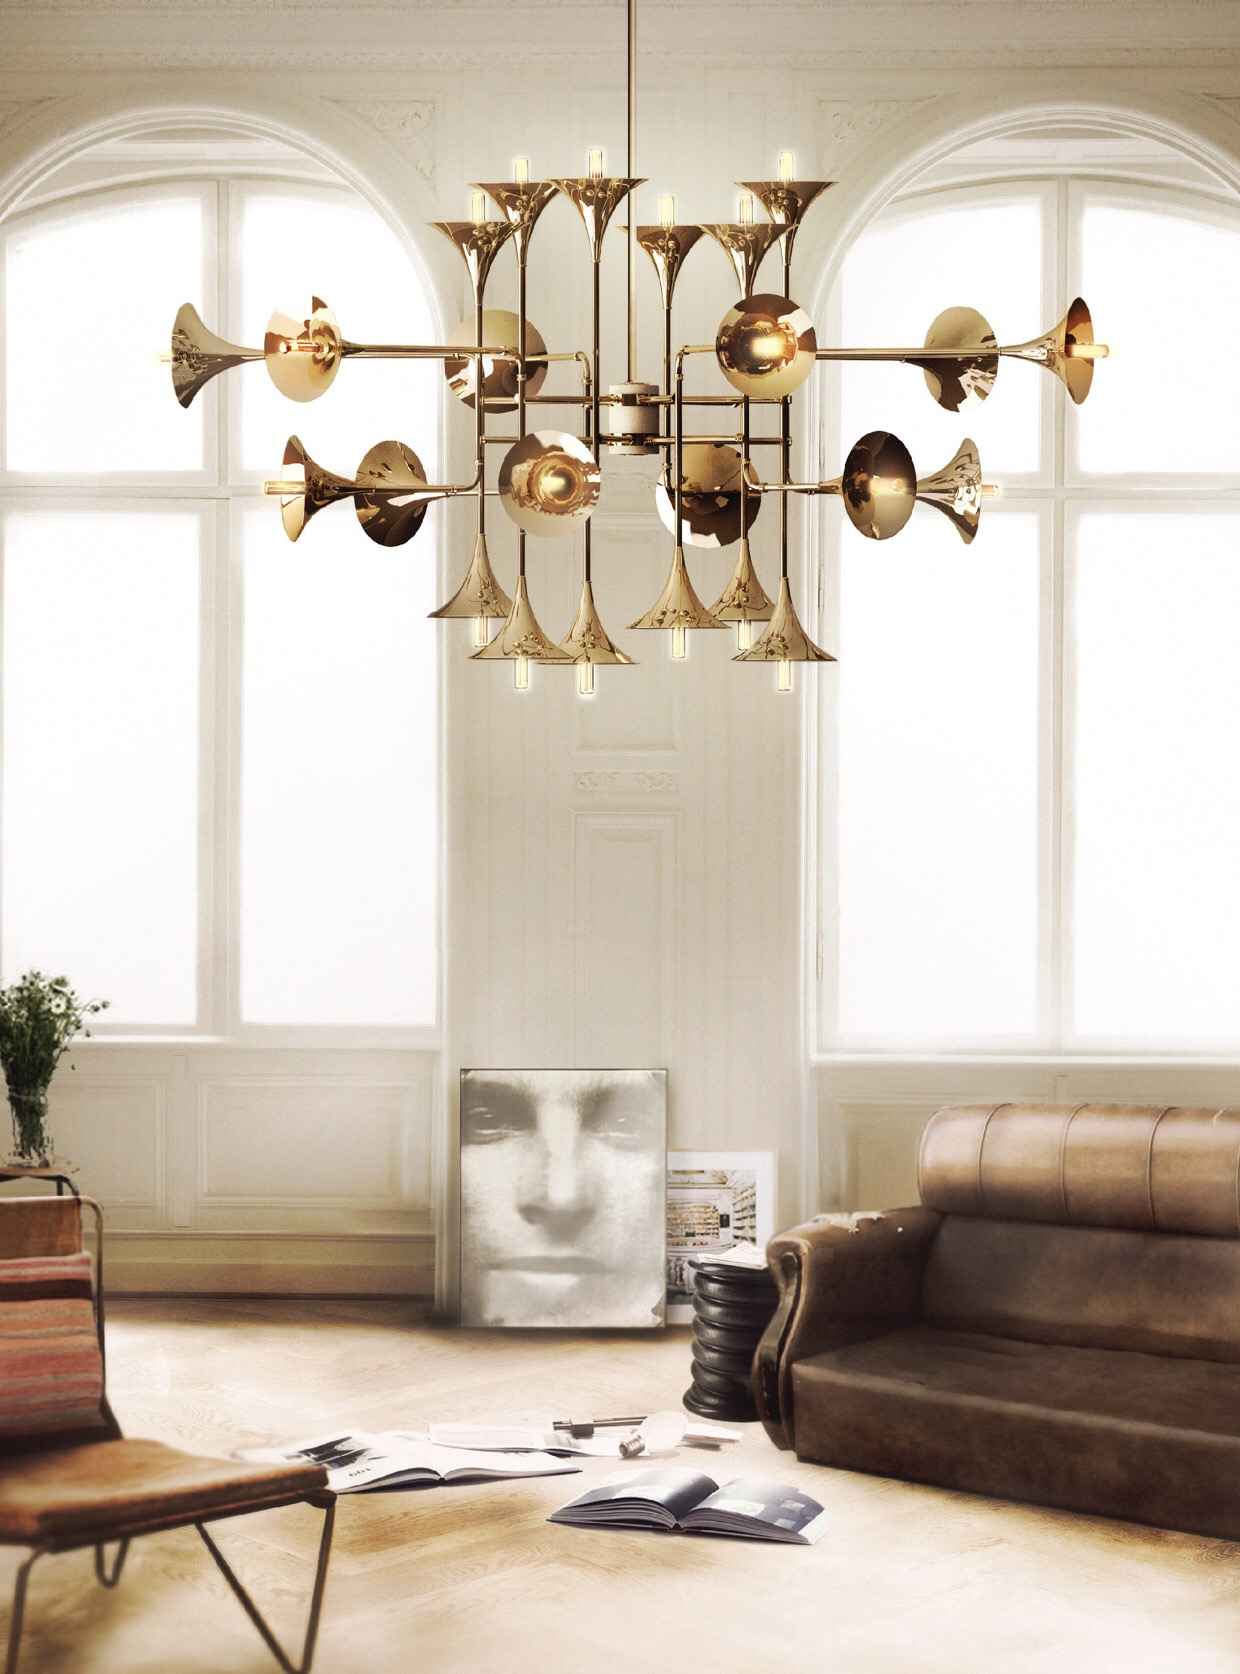 Contemporary Chandeliers design that will delight you2 contemporary chandeliers 10 Contemporary Chandeliers Design That Will Delight You Contemporary Chandeliers design that will delight you2 1